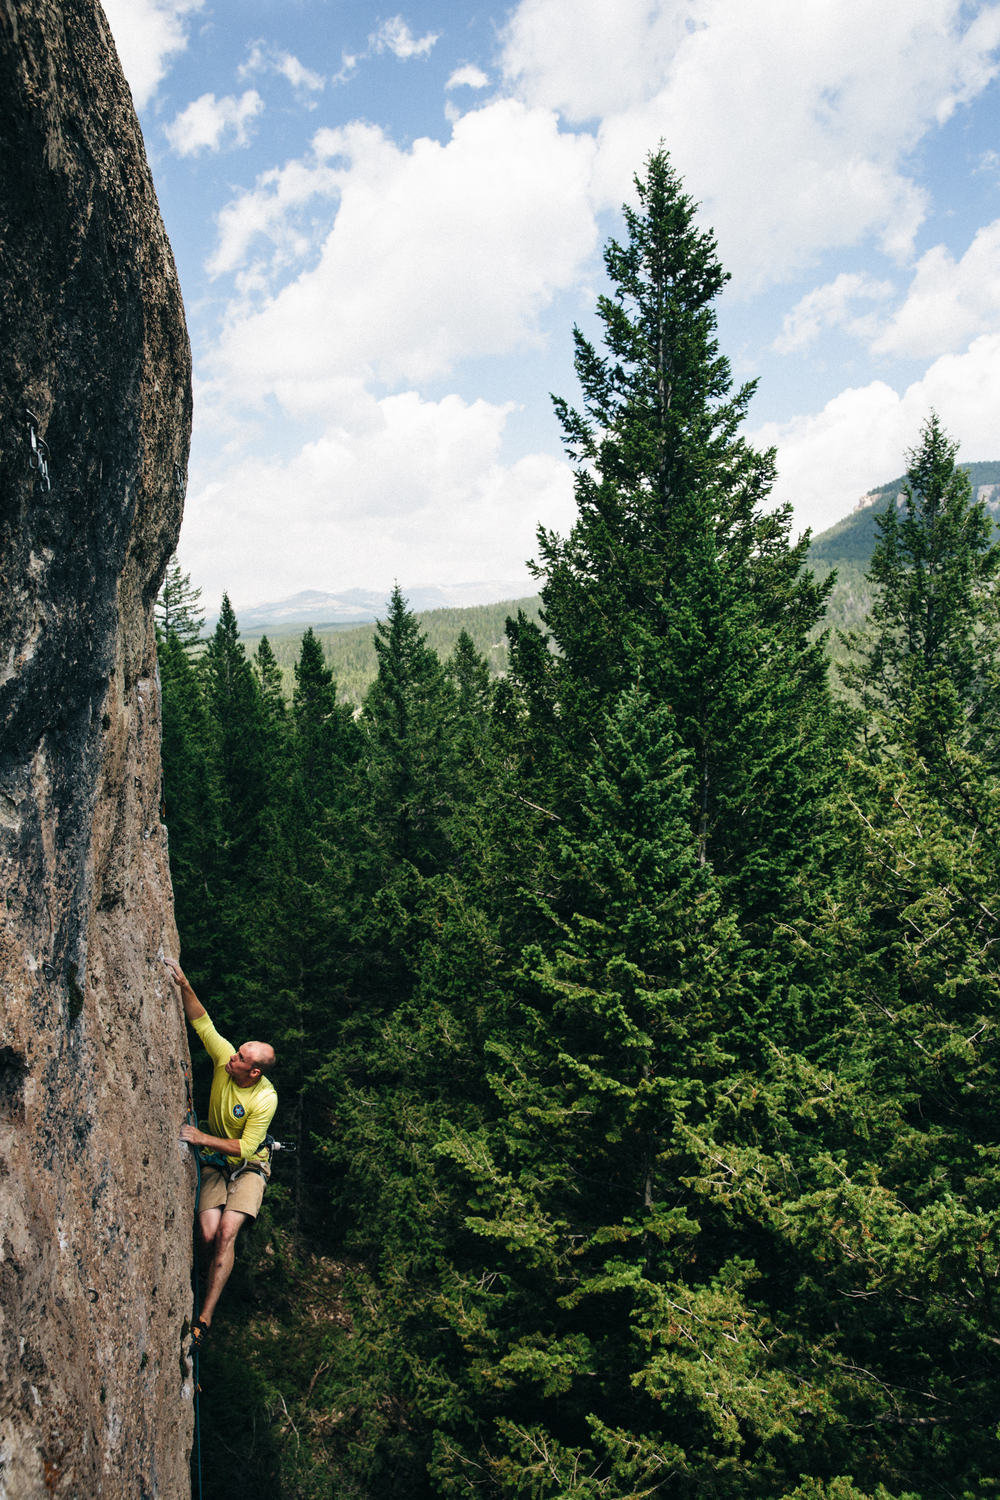 Erik Swanson sending The Cloud Peak Vista Traverse Company (5.11a) in Ten Sleep, Wyoming. Michael Lim Photography 2015 ©